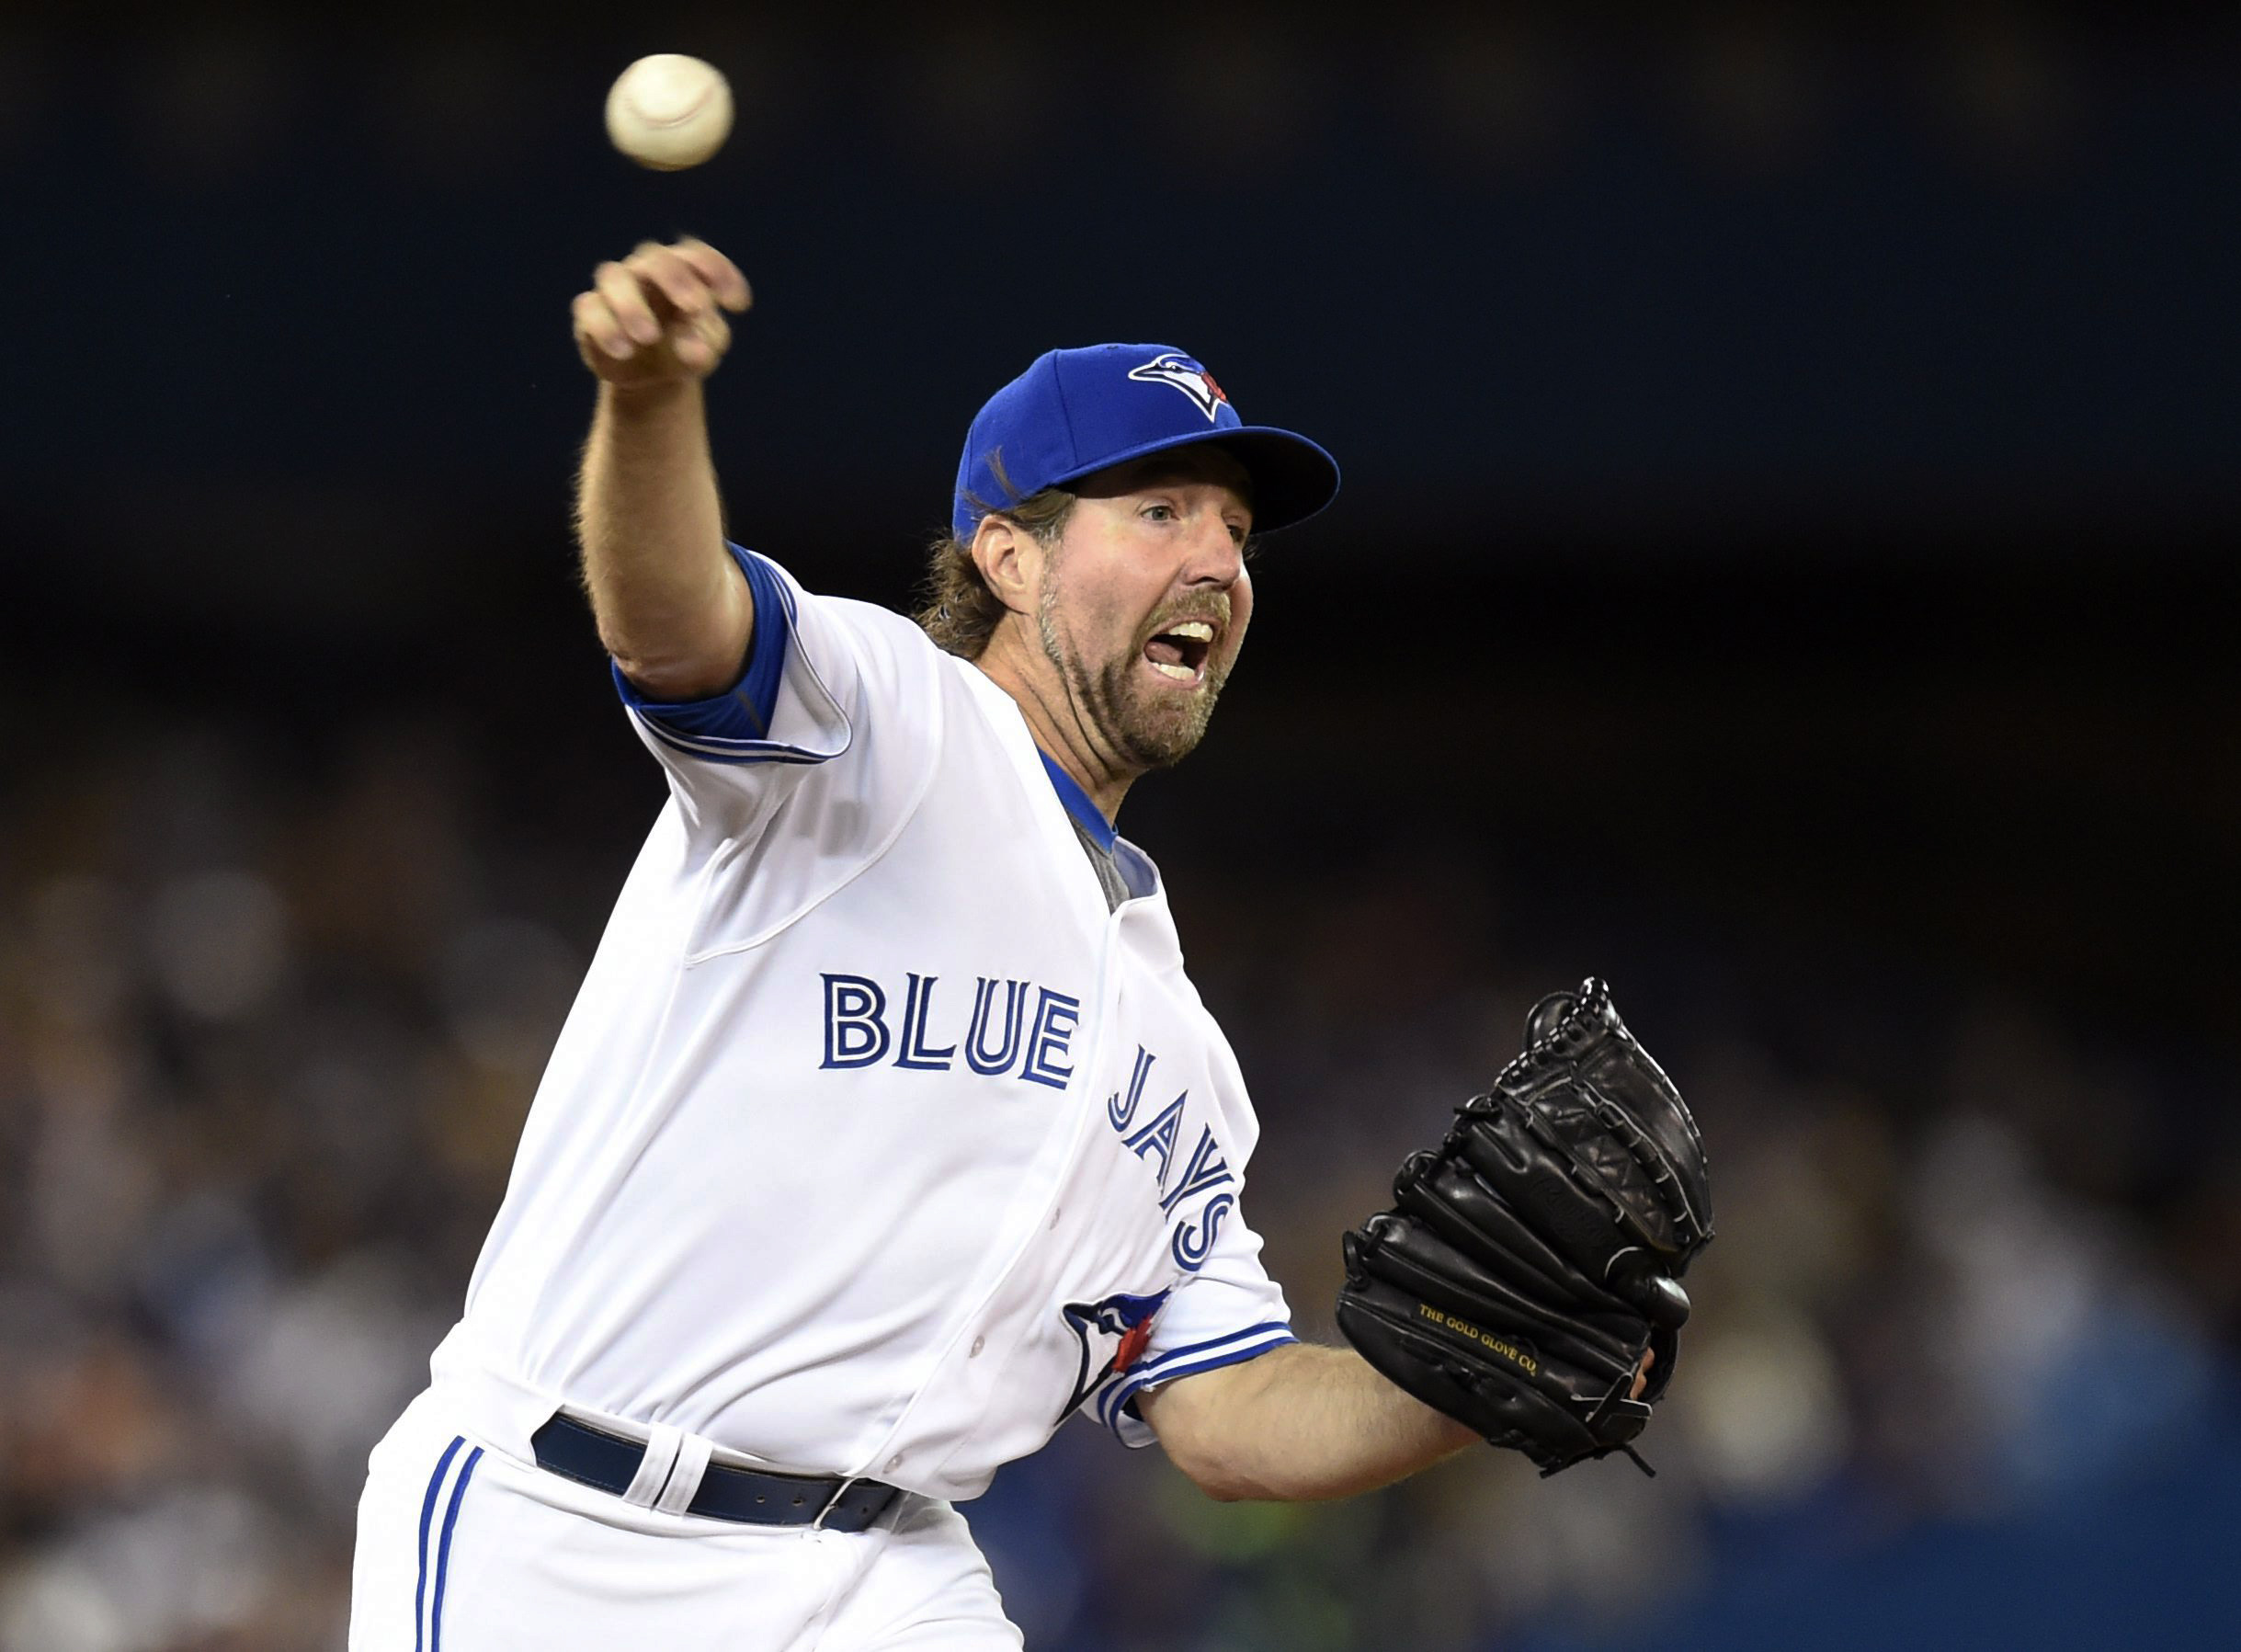 Toronto Blue Jays starting pitcher R.A. Dickey throws to first base during the second inning of a baseball game against the Tampa Bay Rays in Toronto on Friday, Sept. 25, 2015. (Frank Gunn/The Canadian Press via AP)